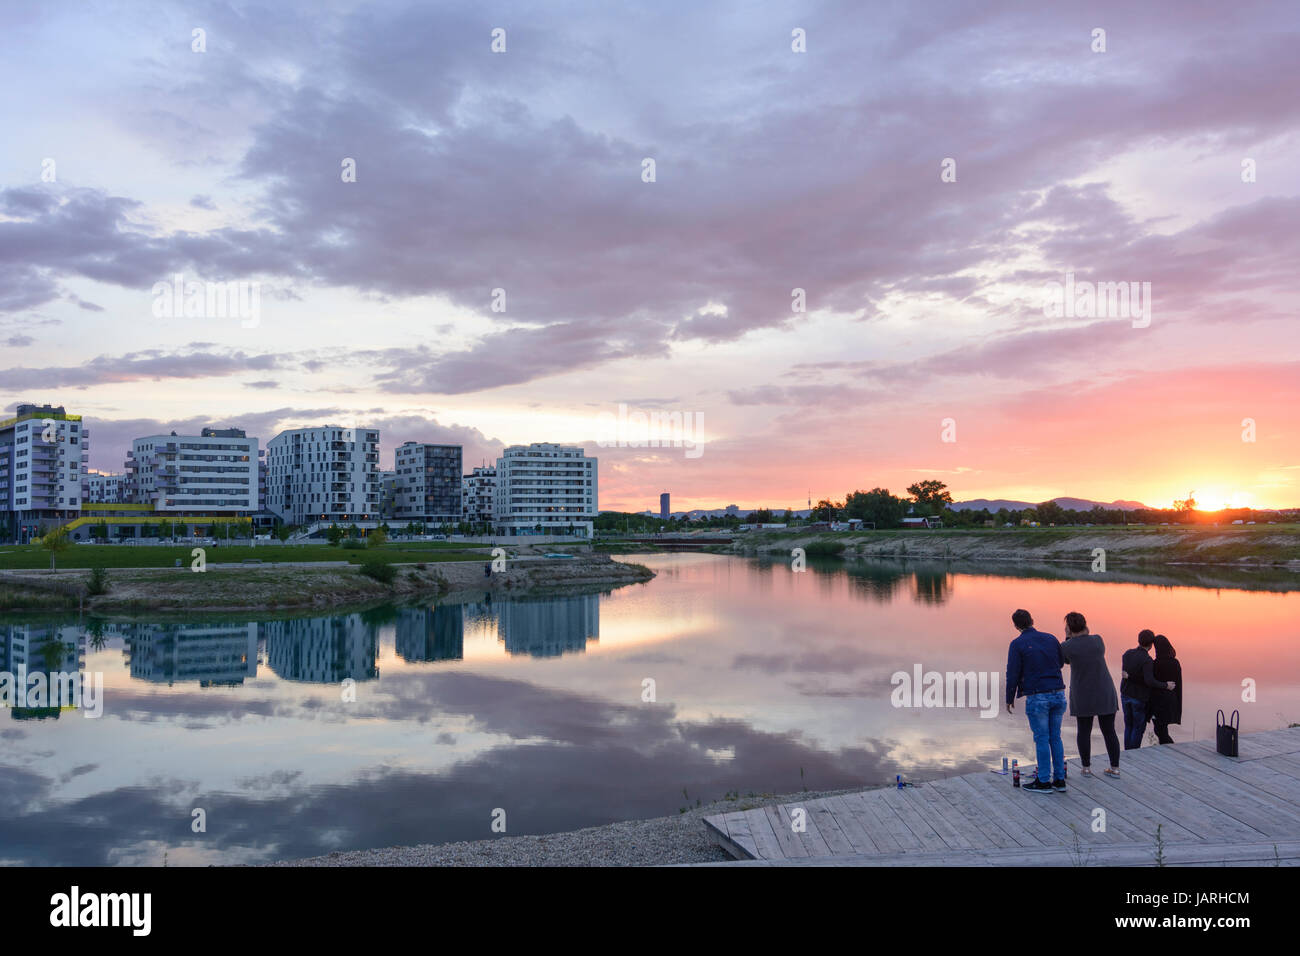 Seestadt (lake city) Aspern in construction, houses, lake, people take each others picture, Wien, Vienna, 22. Donaustadt, - Stock Image